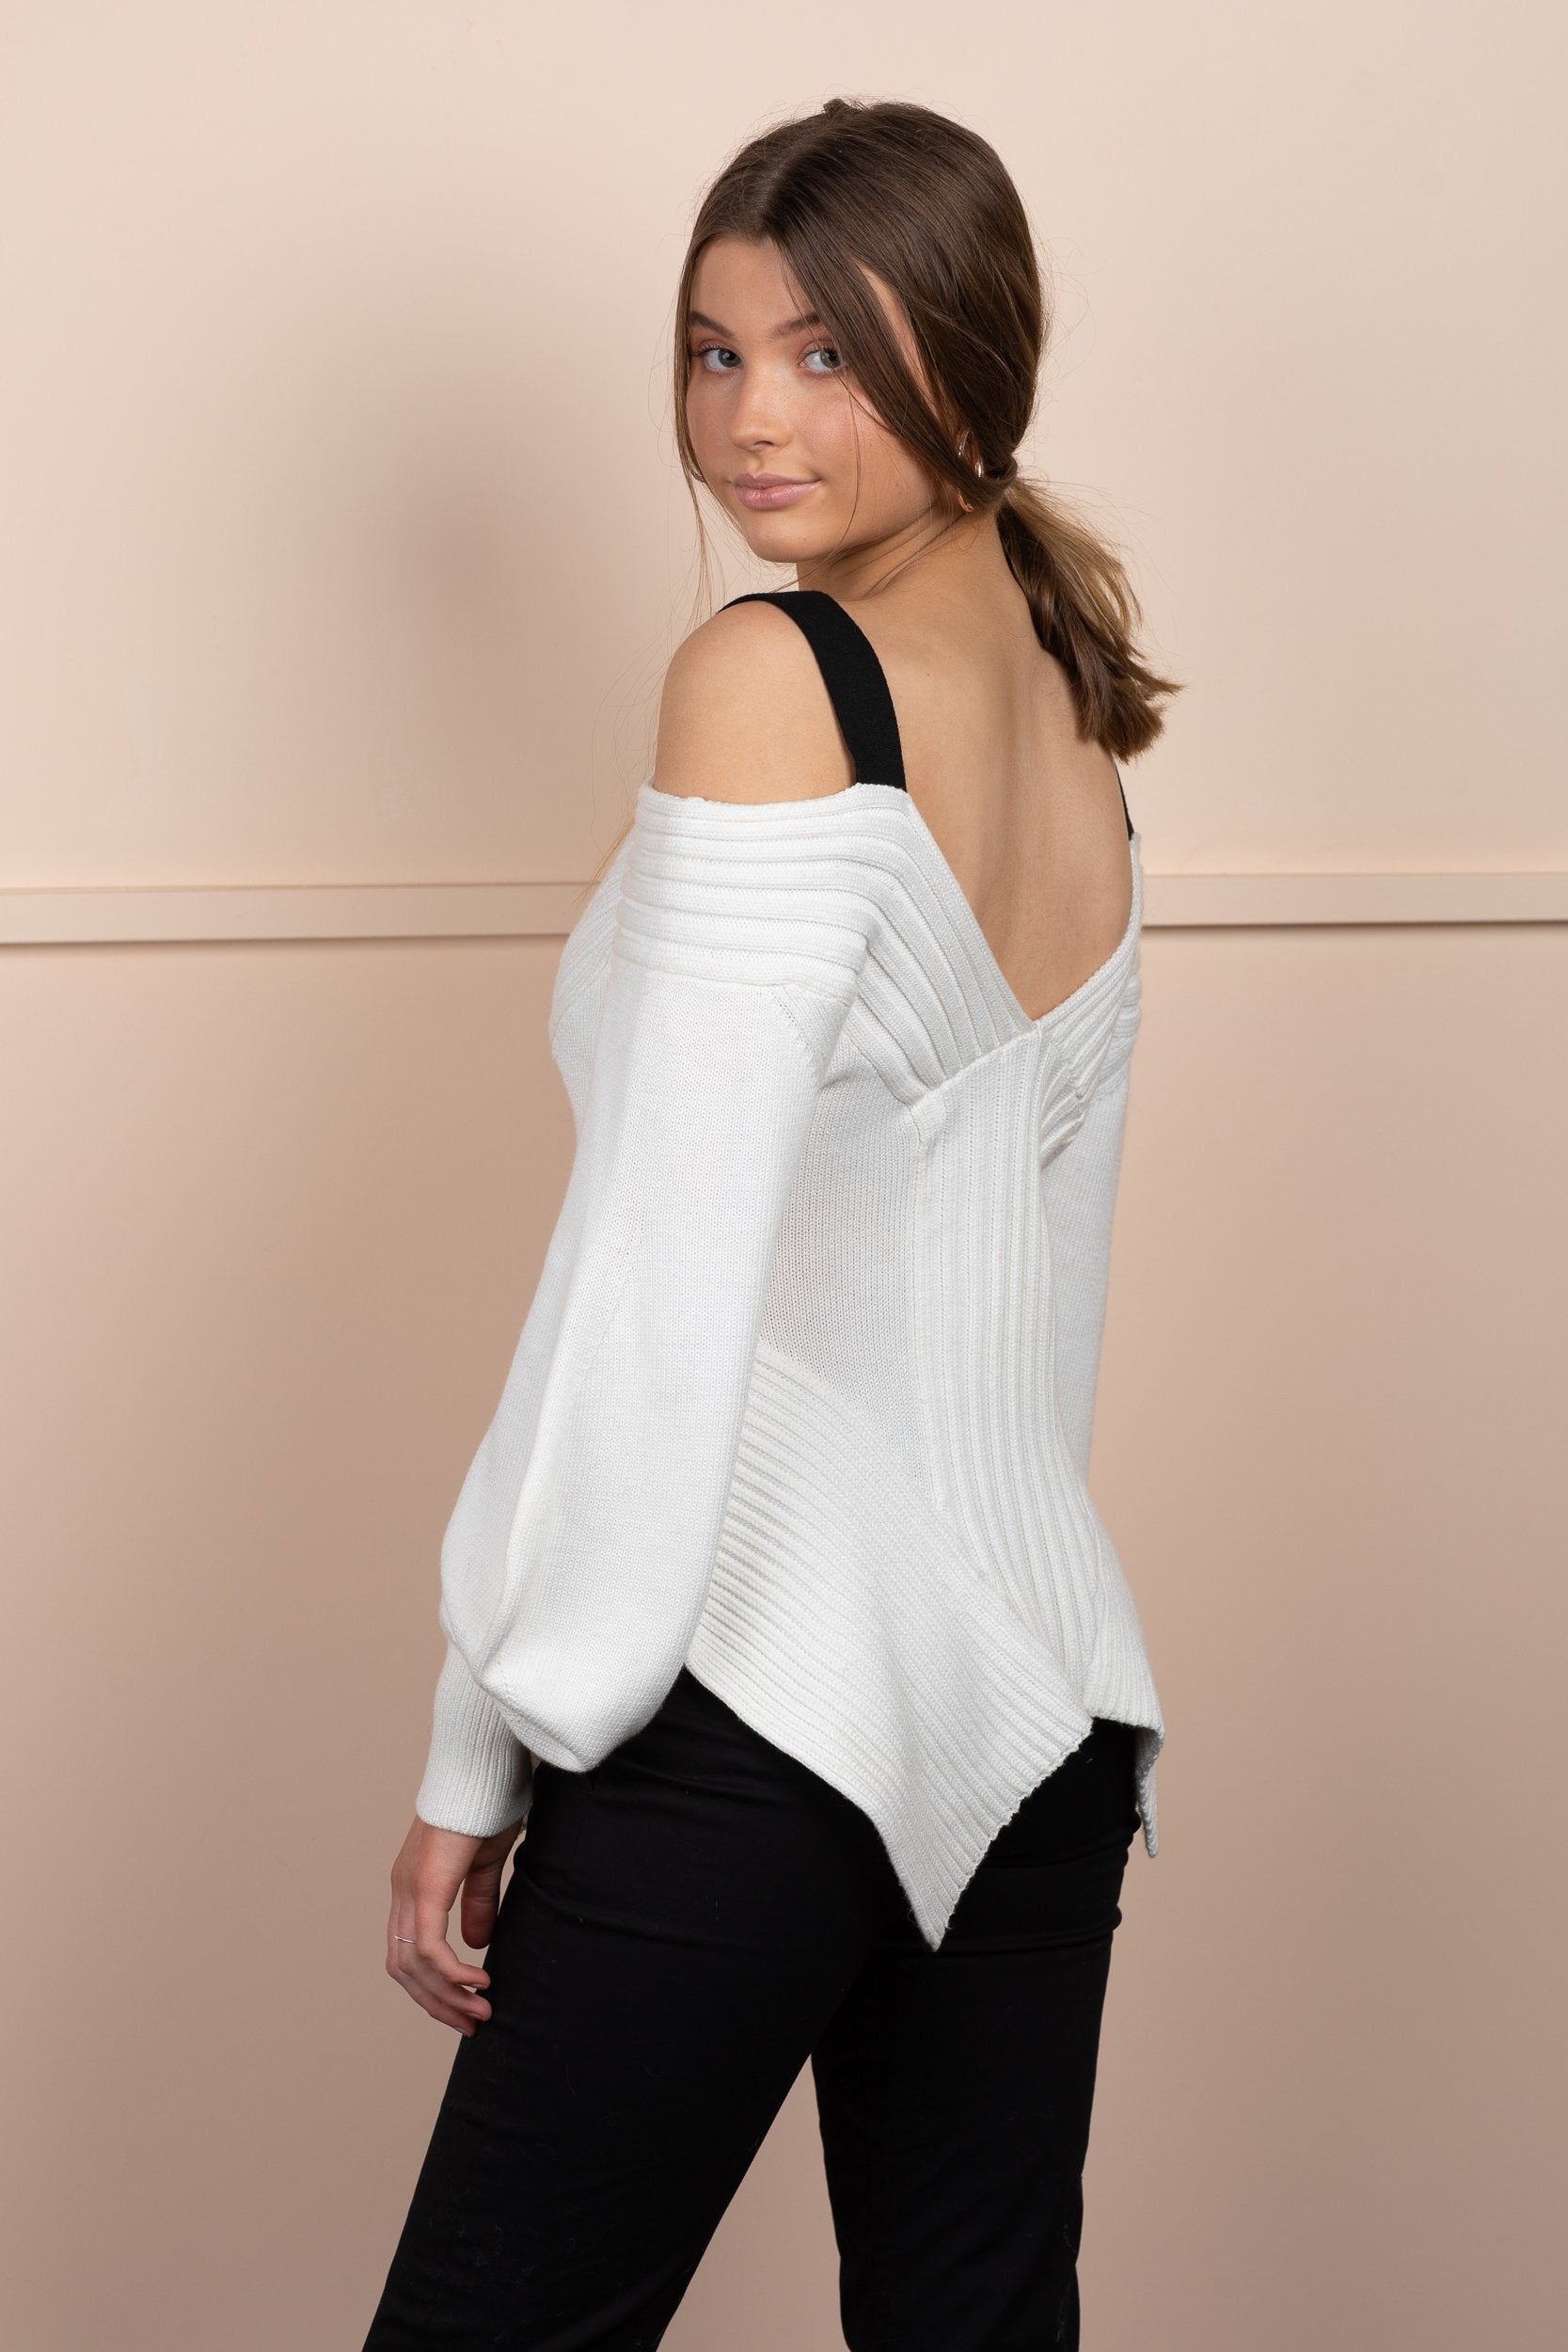 Hali Jumper - White/Black